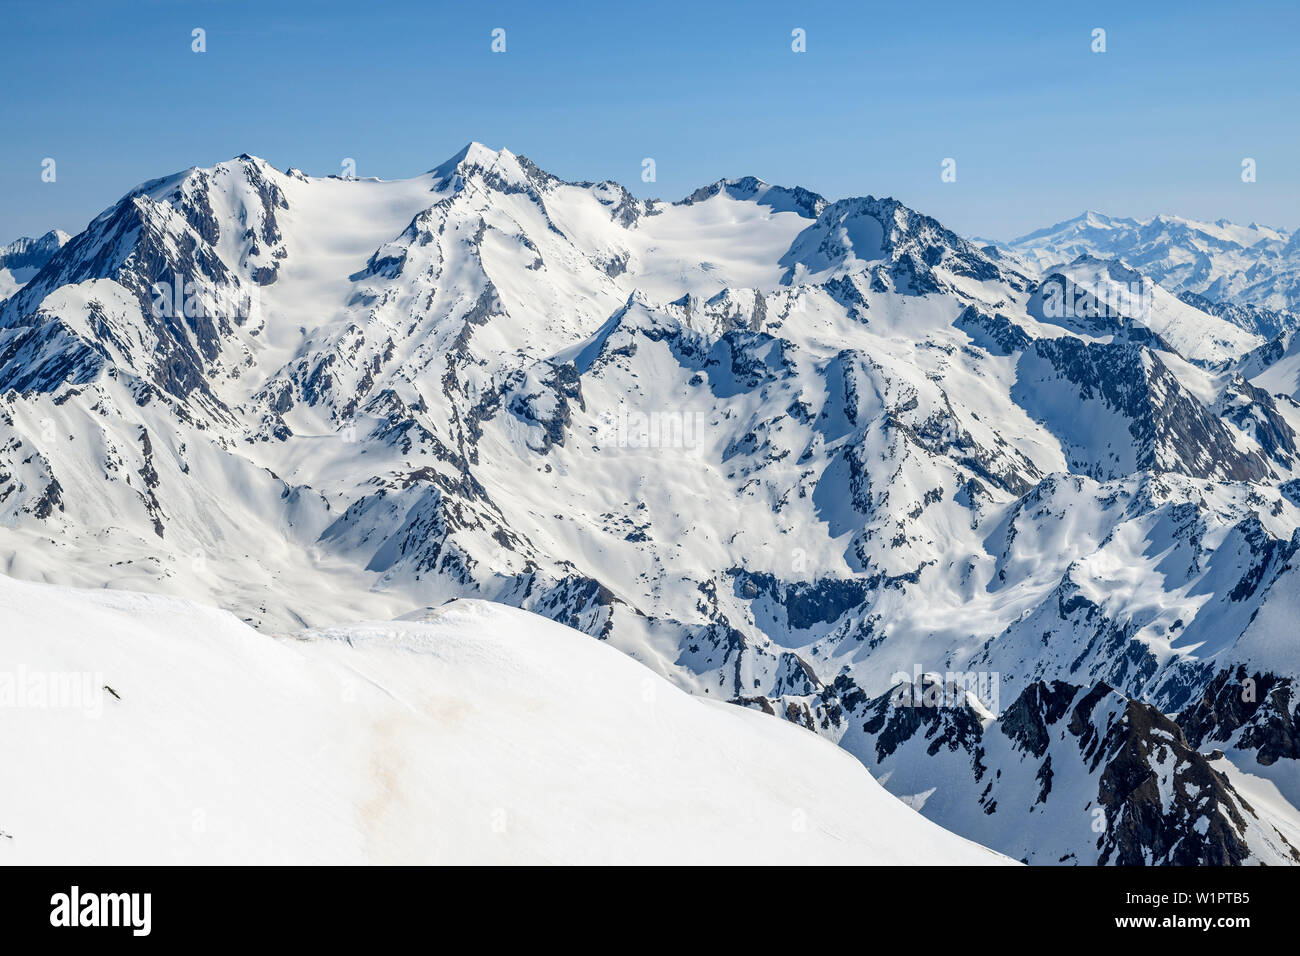 Snow-covered mountains and glaciers with Hohferner and Hochfeiler, from Wilde Kreuzspitze, valley of Pfitschtal, Zillertal Alps, South Tyrol, Italy Stock Photo